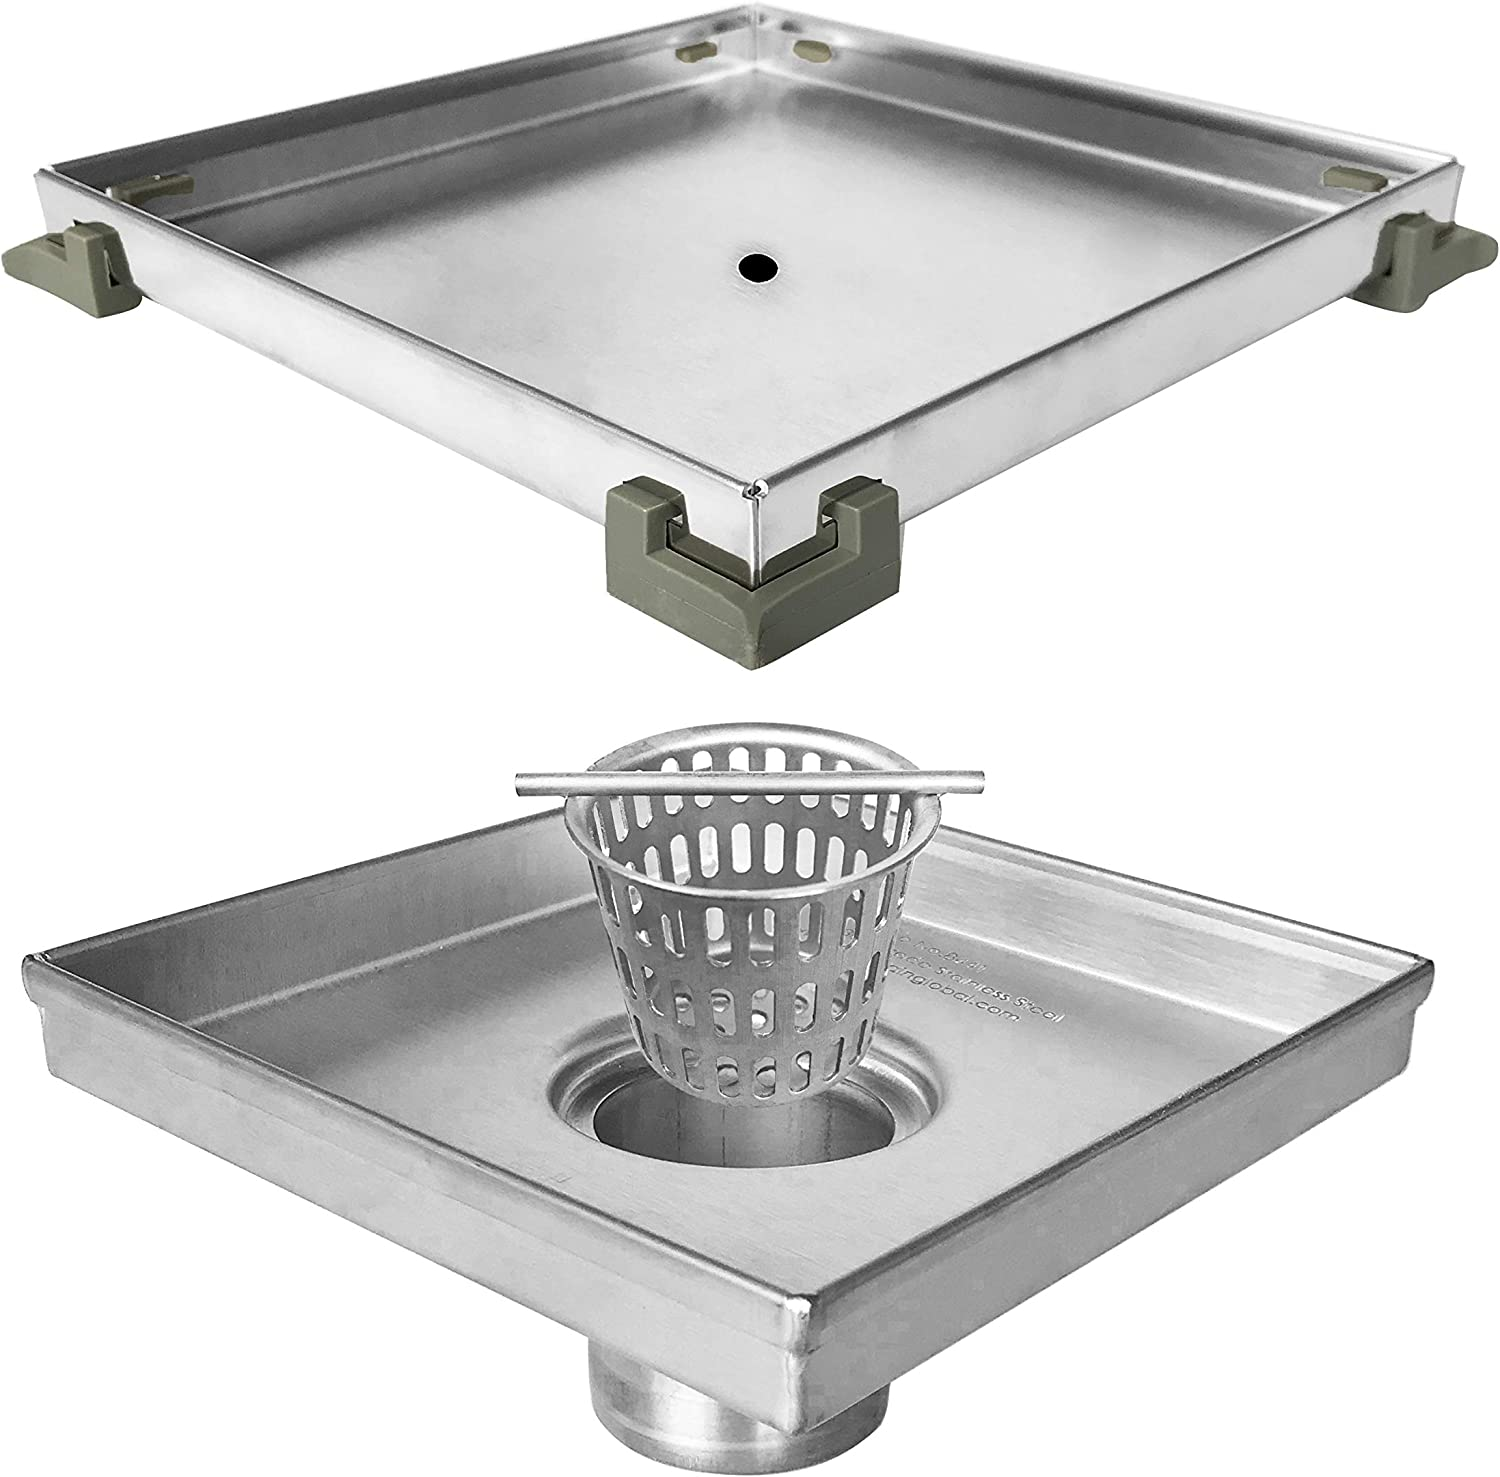 Neodrain ZS3T0106 Square Shower Drain with Tile insert Grate, 6-Inch, Brushed 304 Stainless Steel